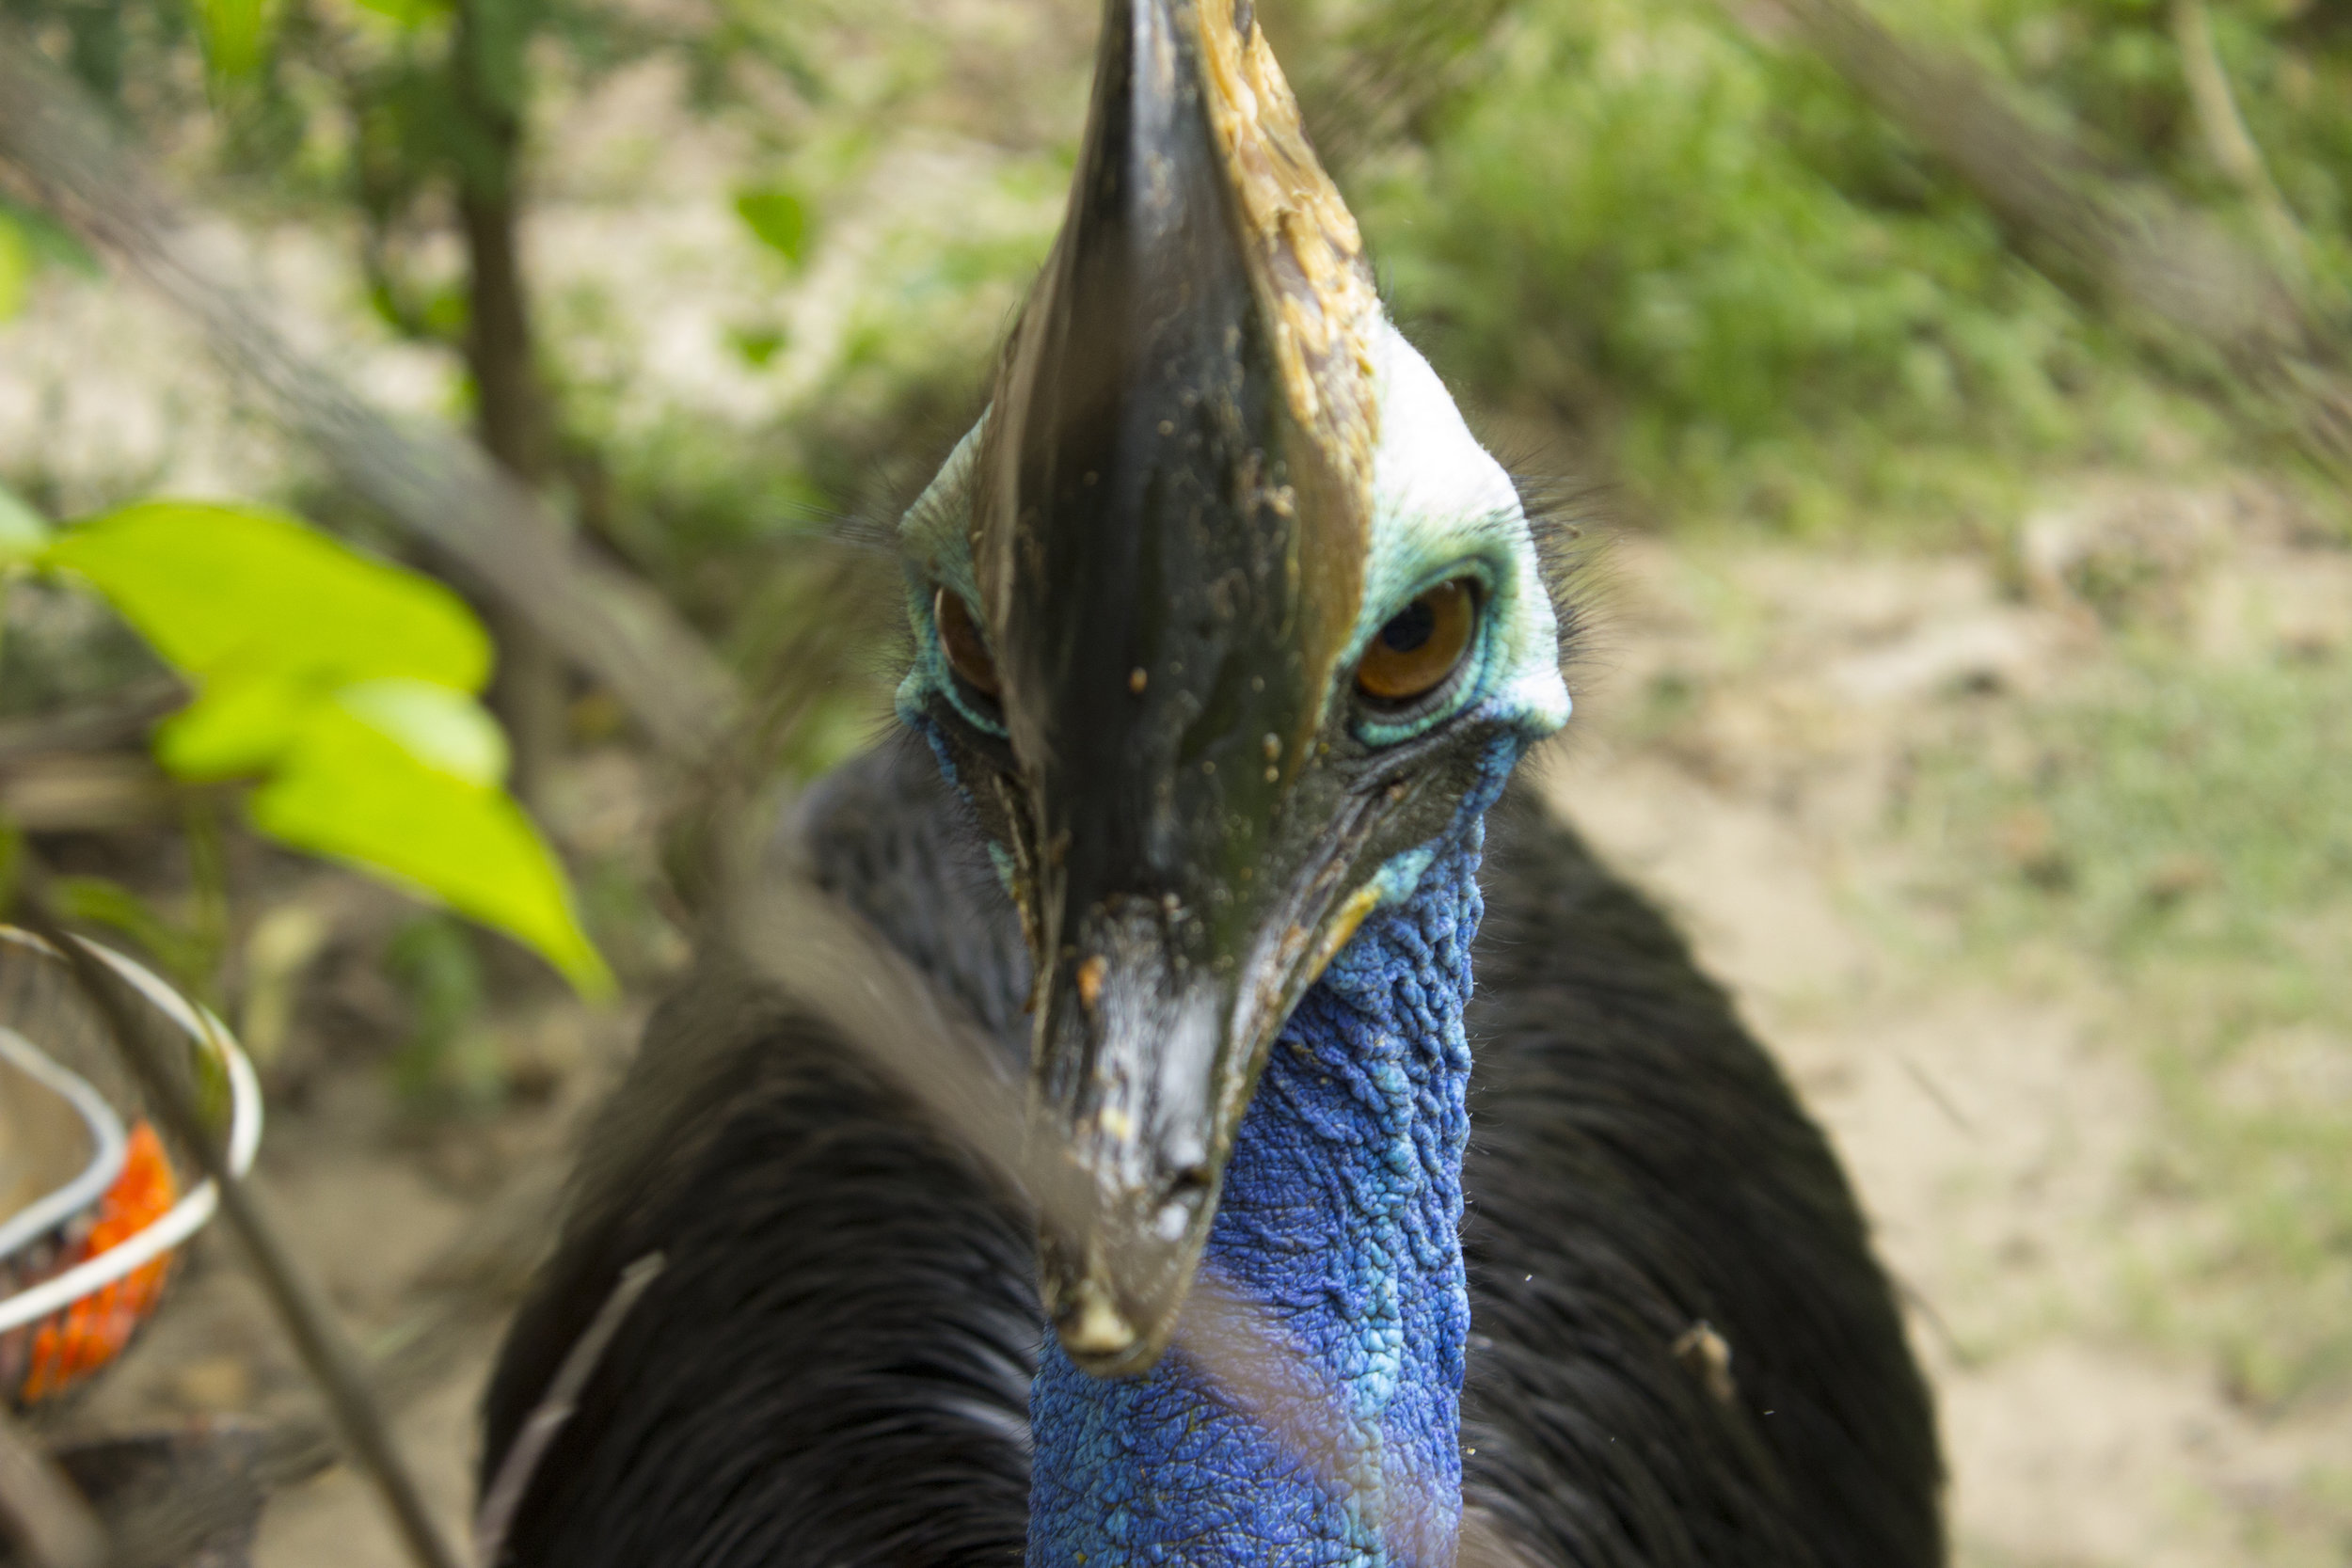 Many animals, like this cassowary, were once kept as exotic pets and then either given away or abandoned when the burden became too much. This cassowary, a long way from its native habitat, had suffered brain damage after improper handling of its delicate, hollow crest.